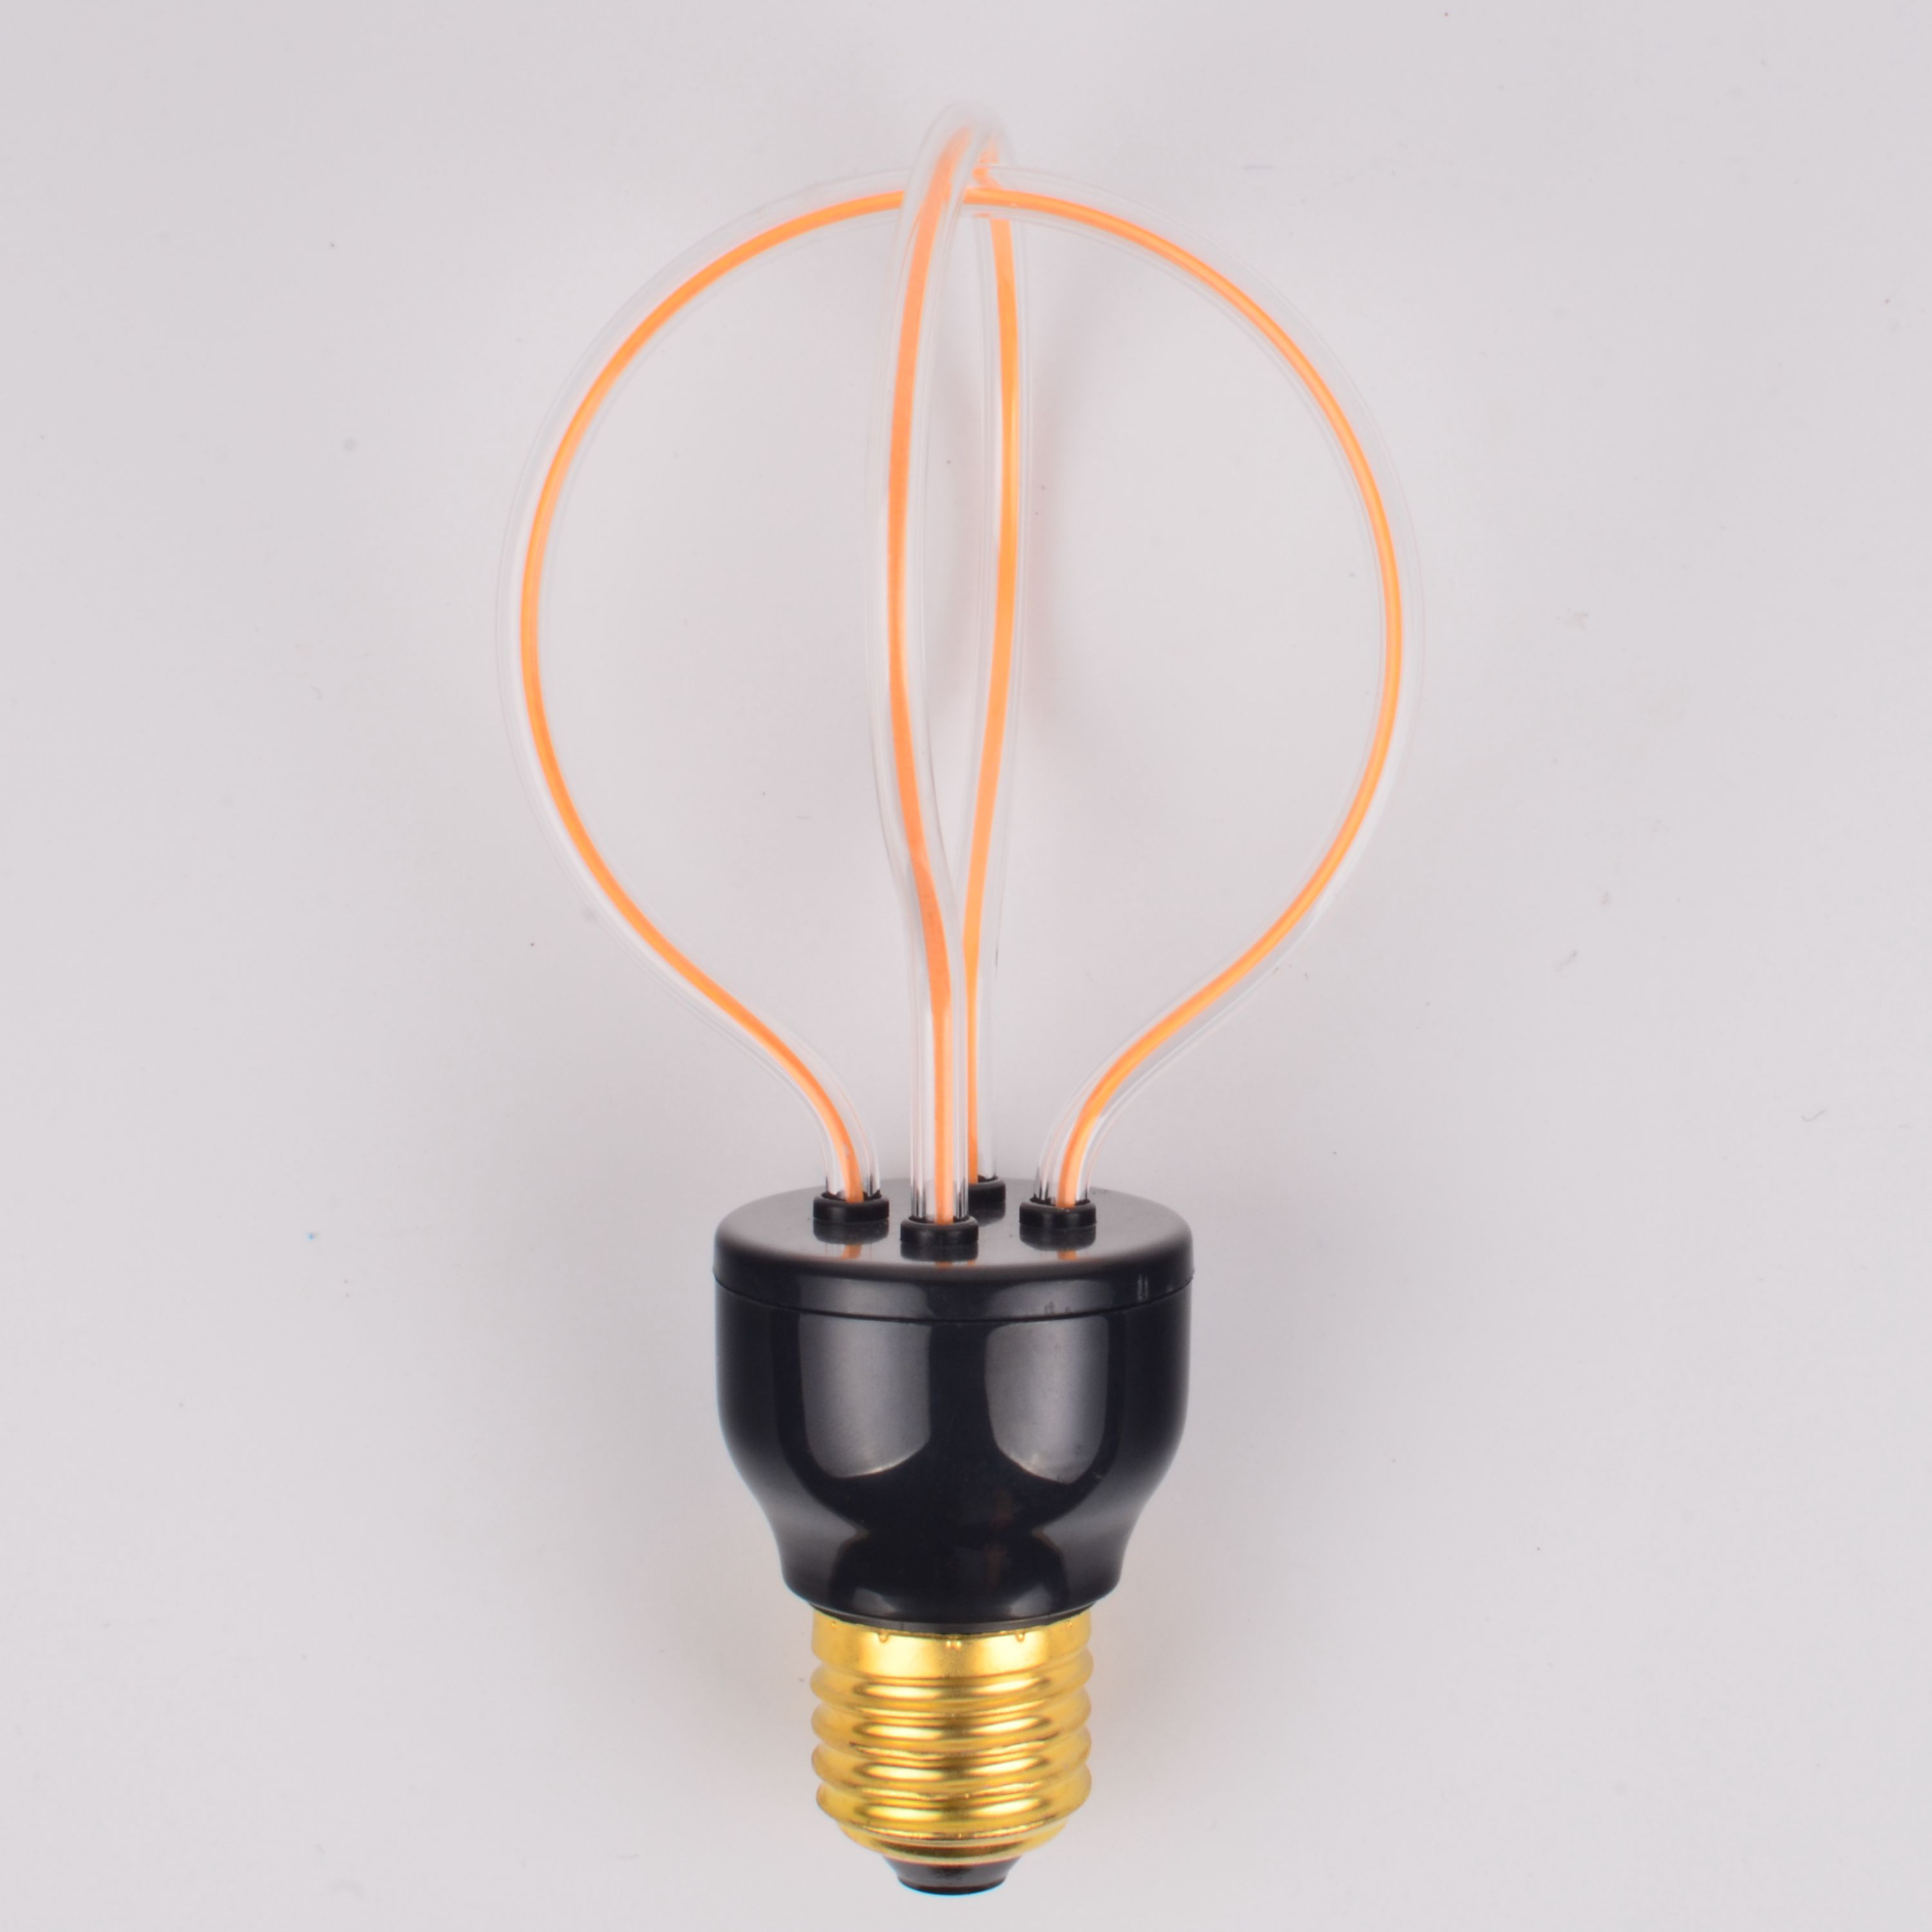 NEW LED filament lamp for decoration